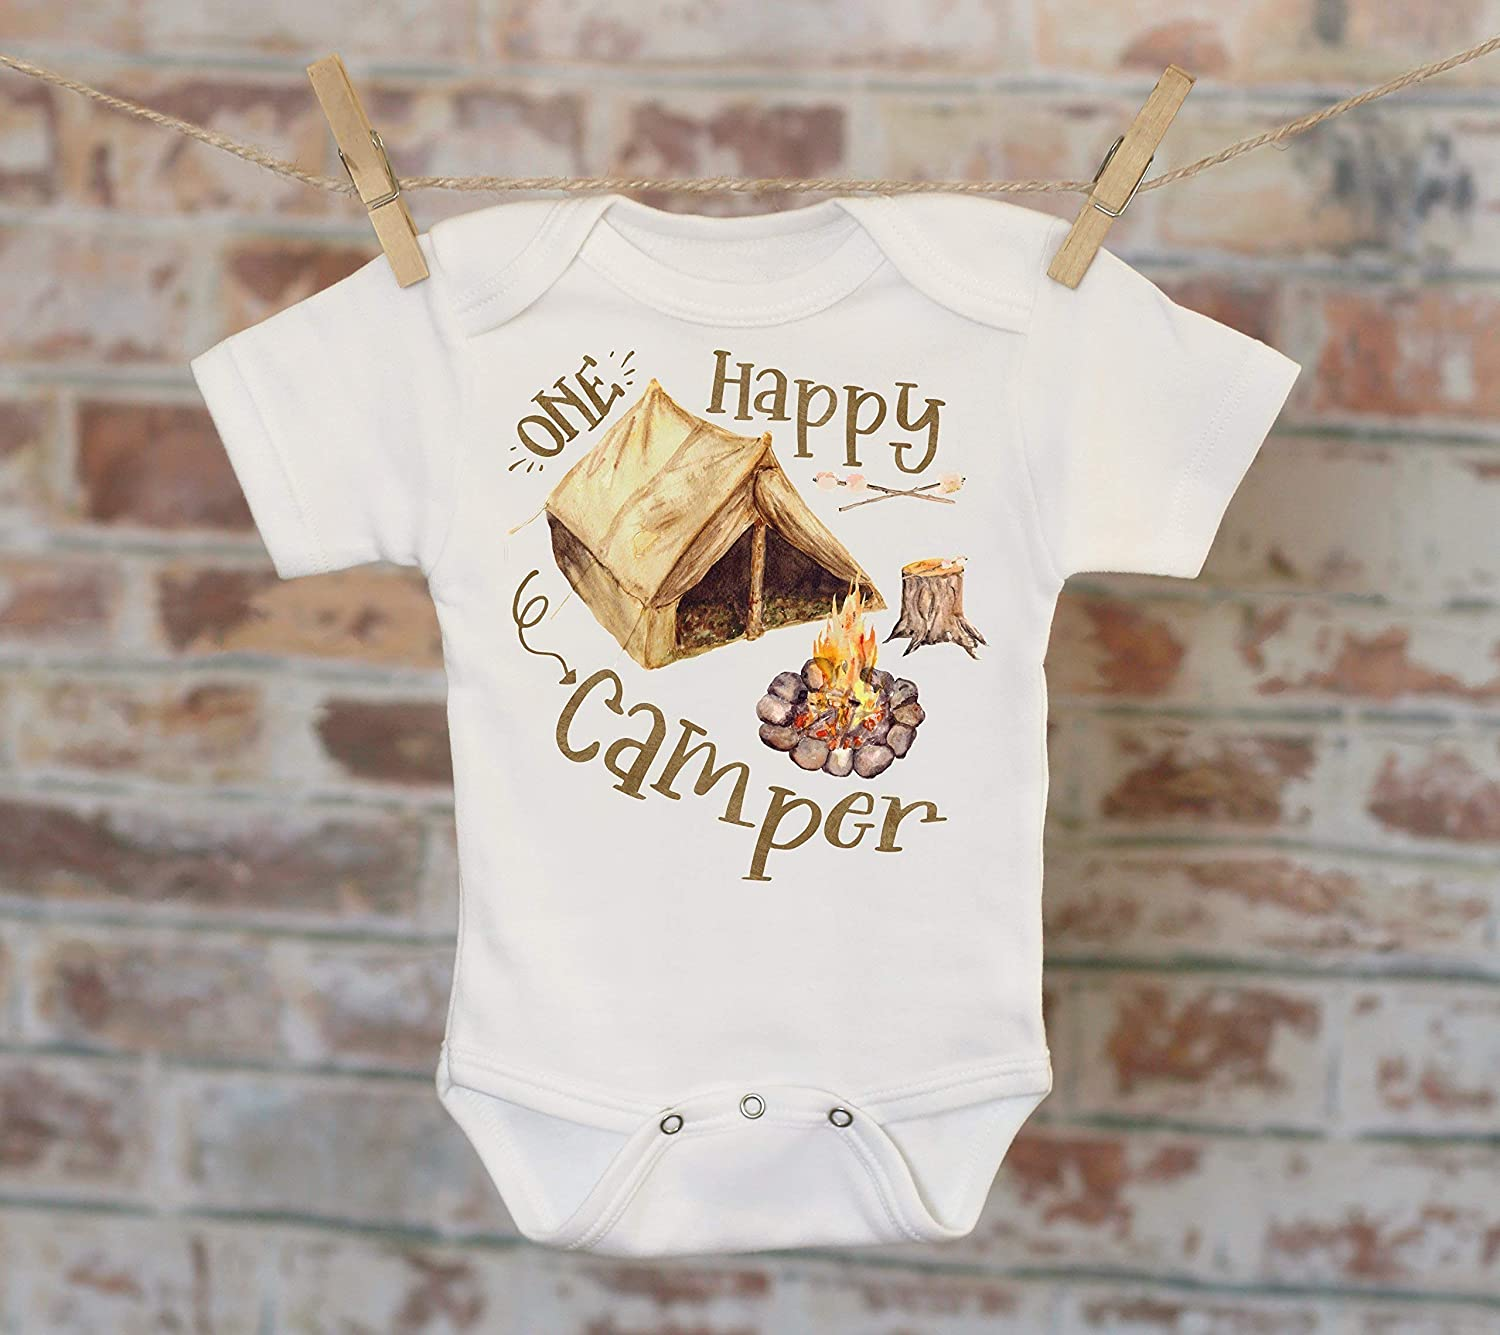 bf068dc7297 Newborn Baby Unisex Infant Gown and Hat Set- Rainbow Baby - Baby ...